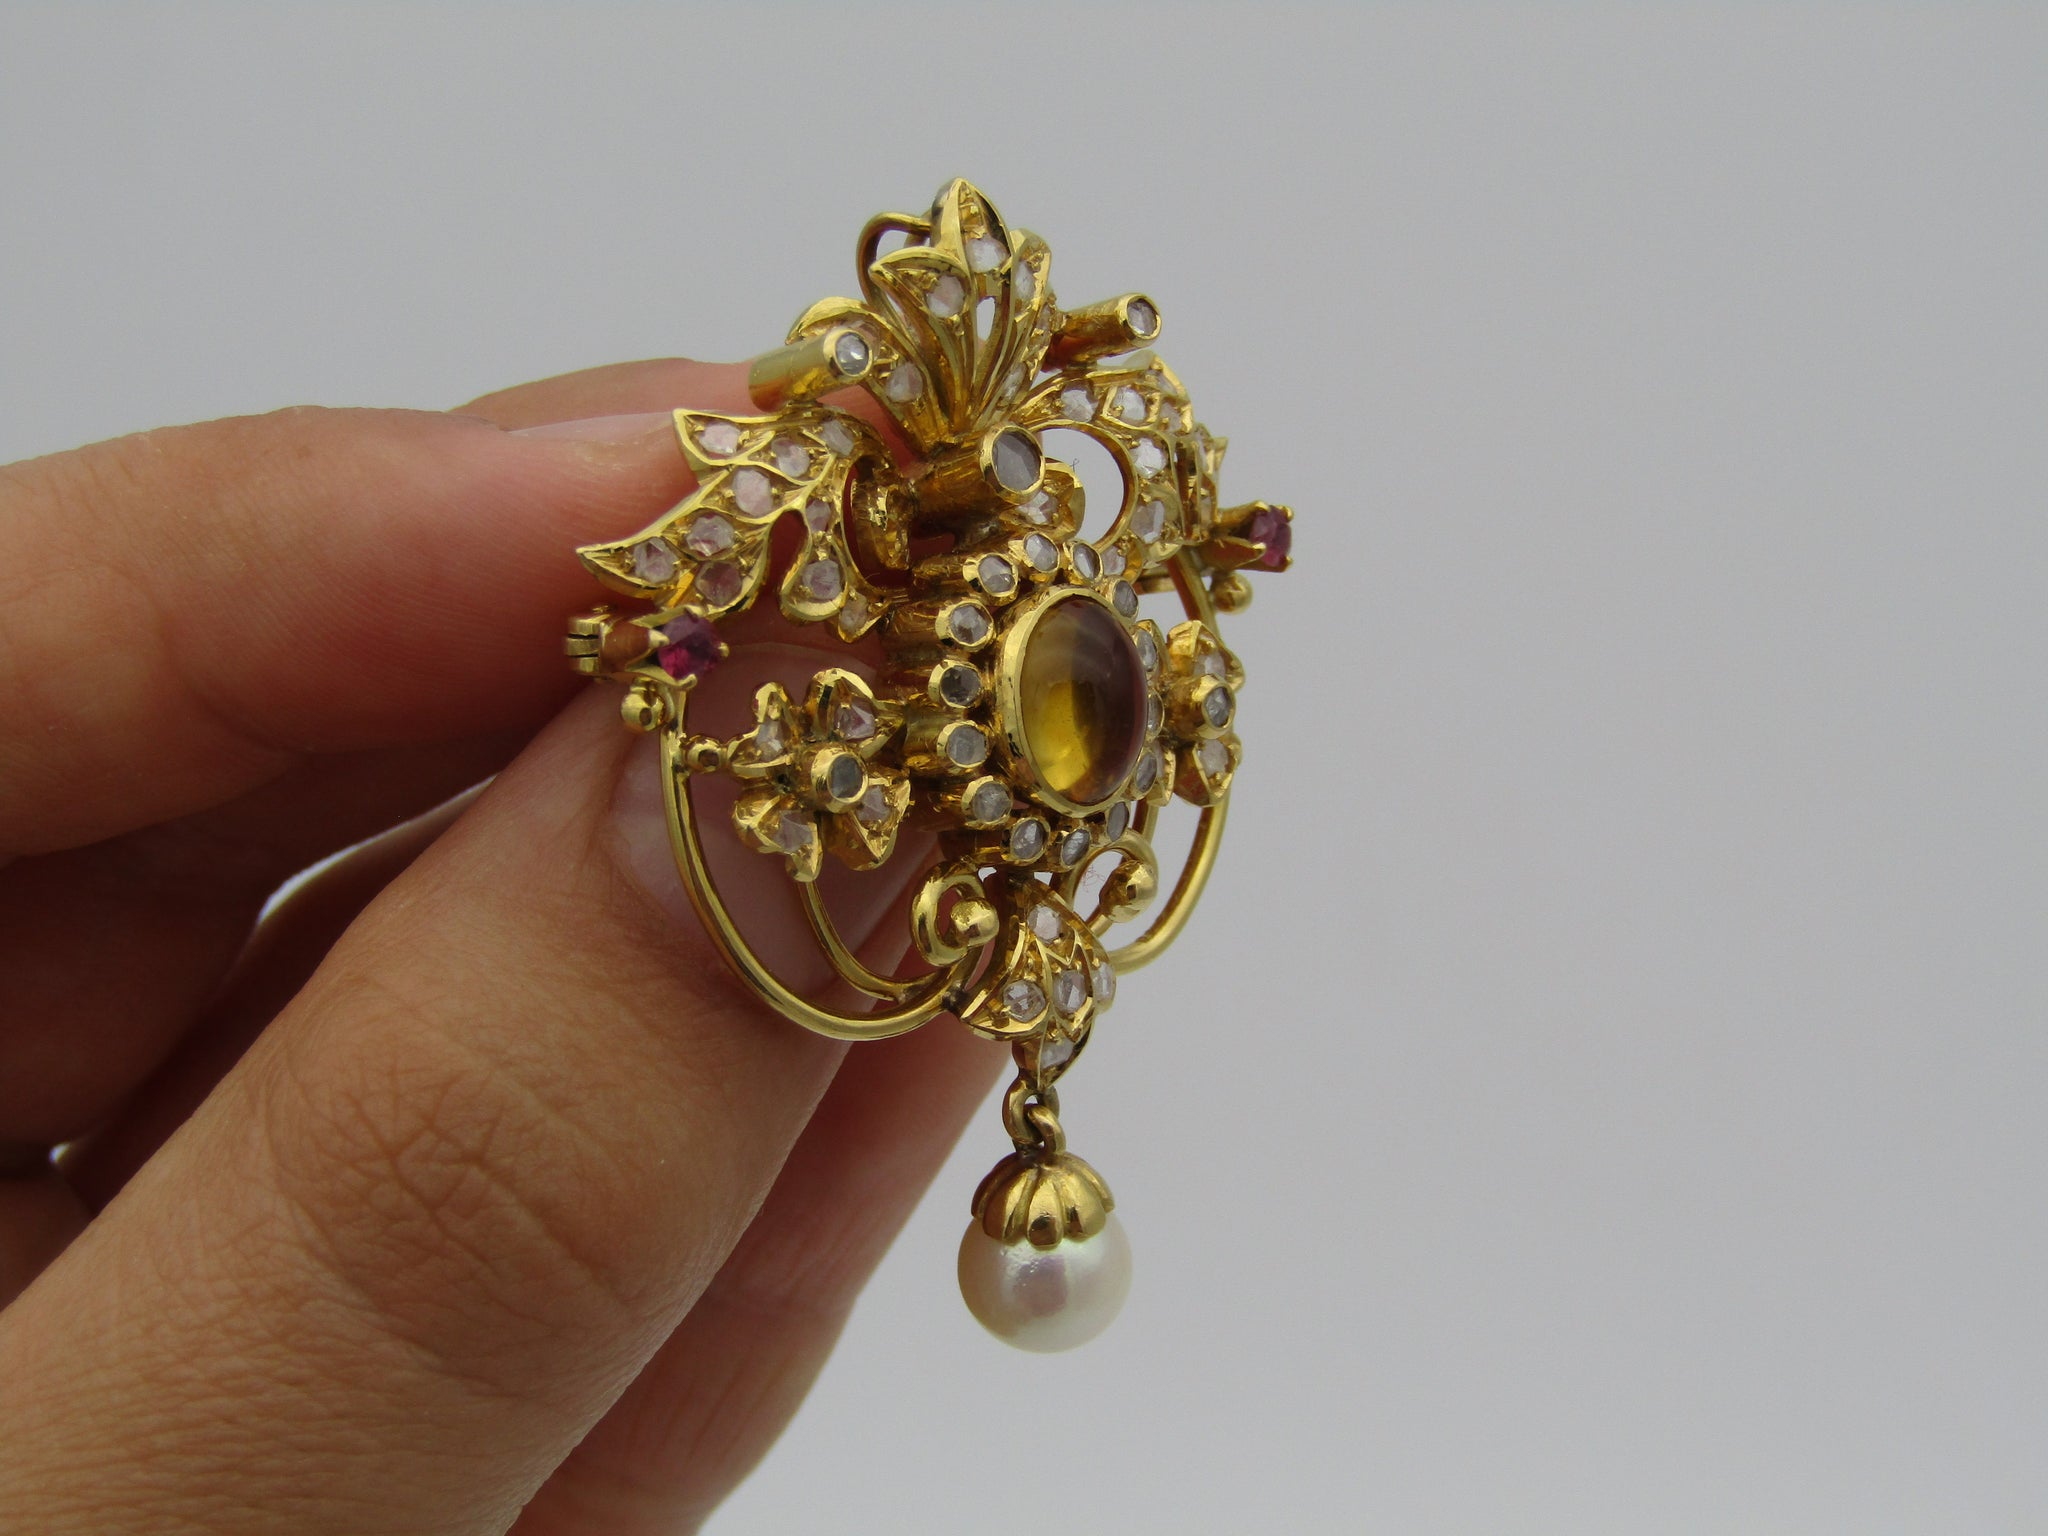 18kt yellow gold Victorian diamond, ruby, citrine and pearl pendant/brooch.